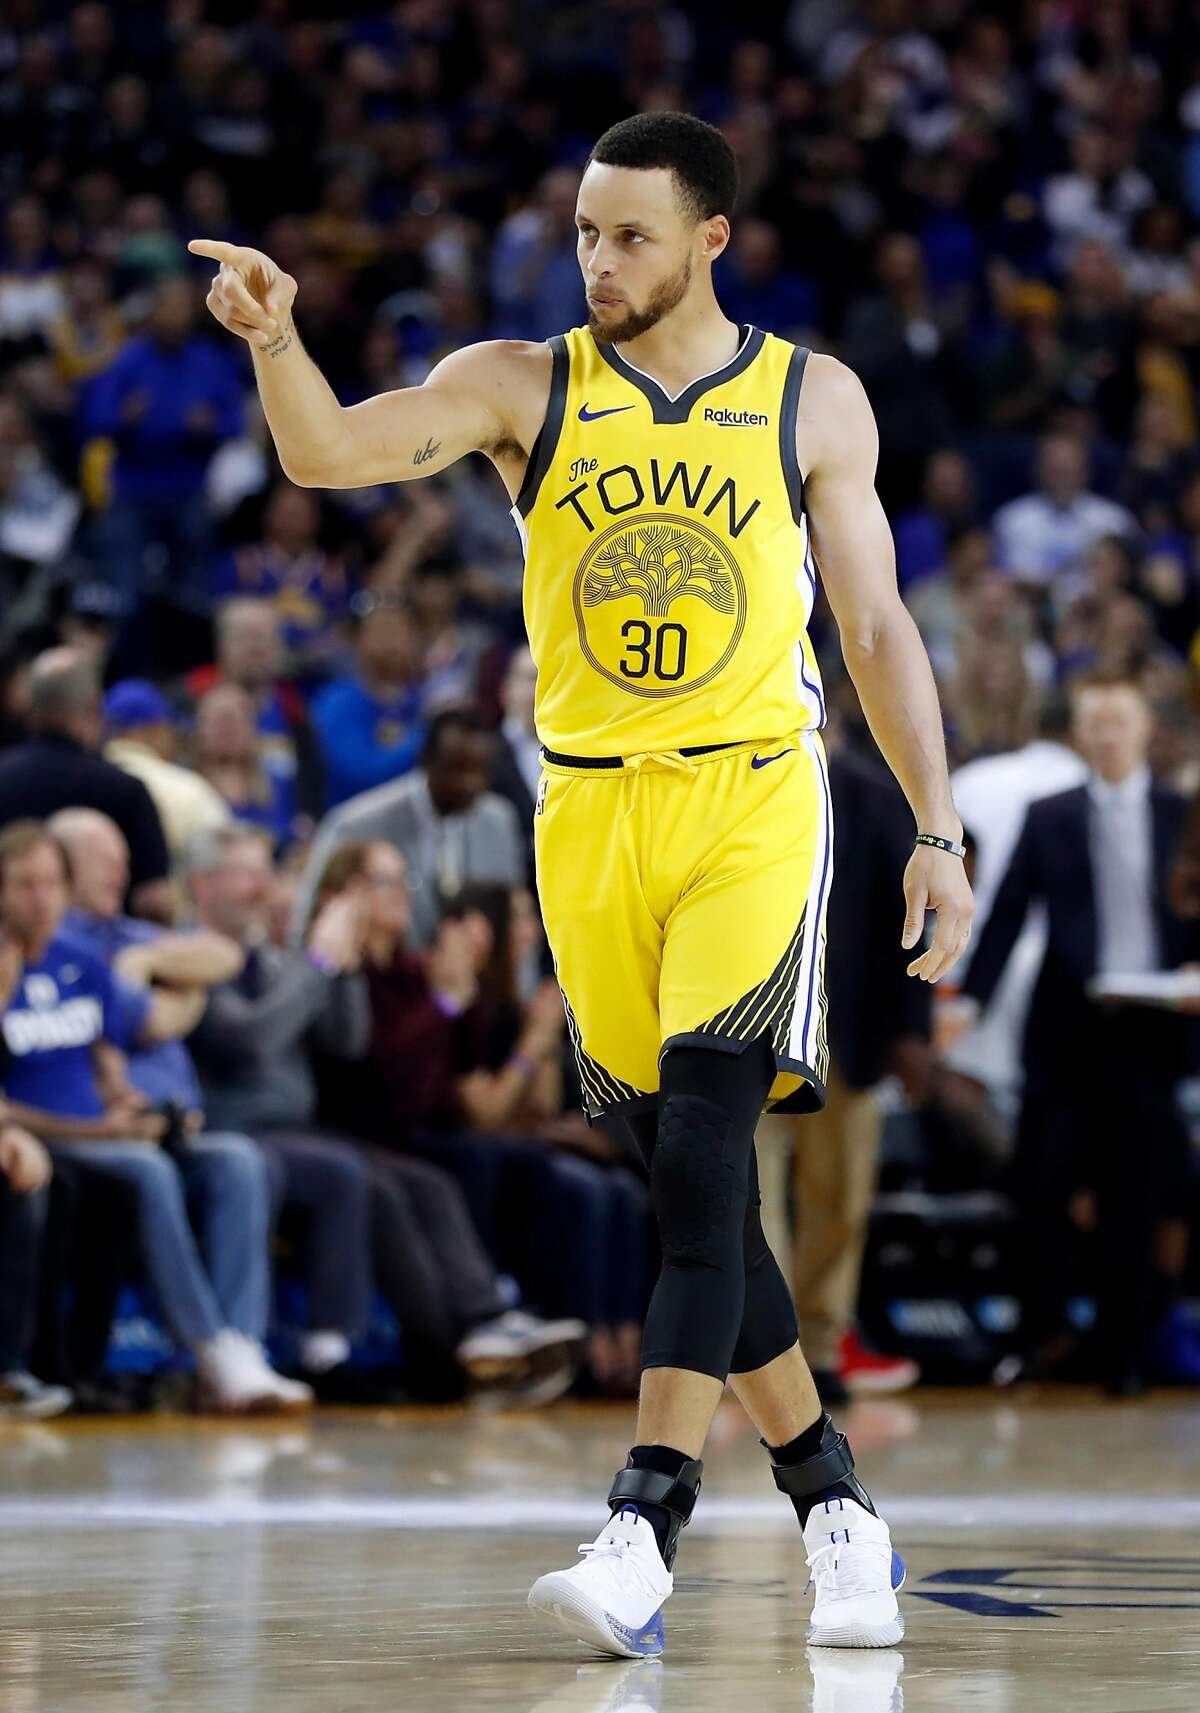 Golden State Warriors' Stephen Curry points during Warriors' 121-114 win over Detroit Pistons during NBA game at Oracle Arena in Oakland, Calif., on Sunday, March 24, 2019.